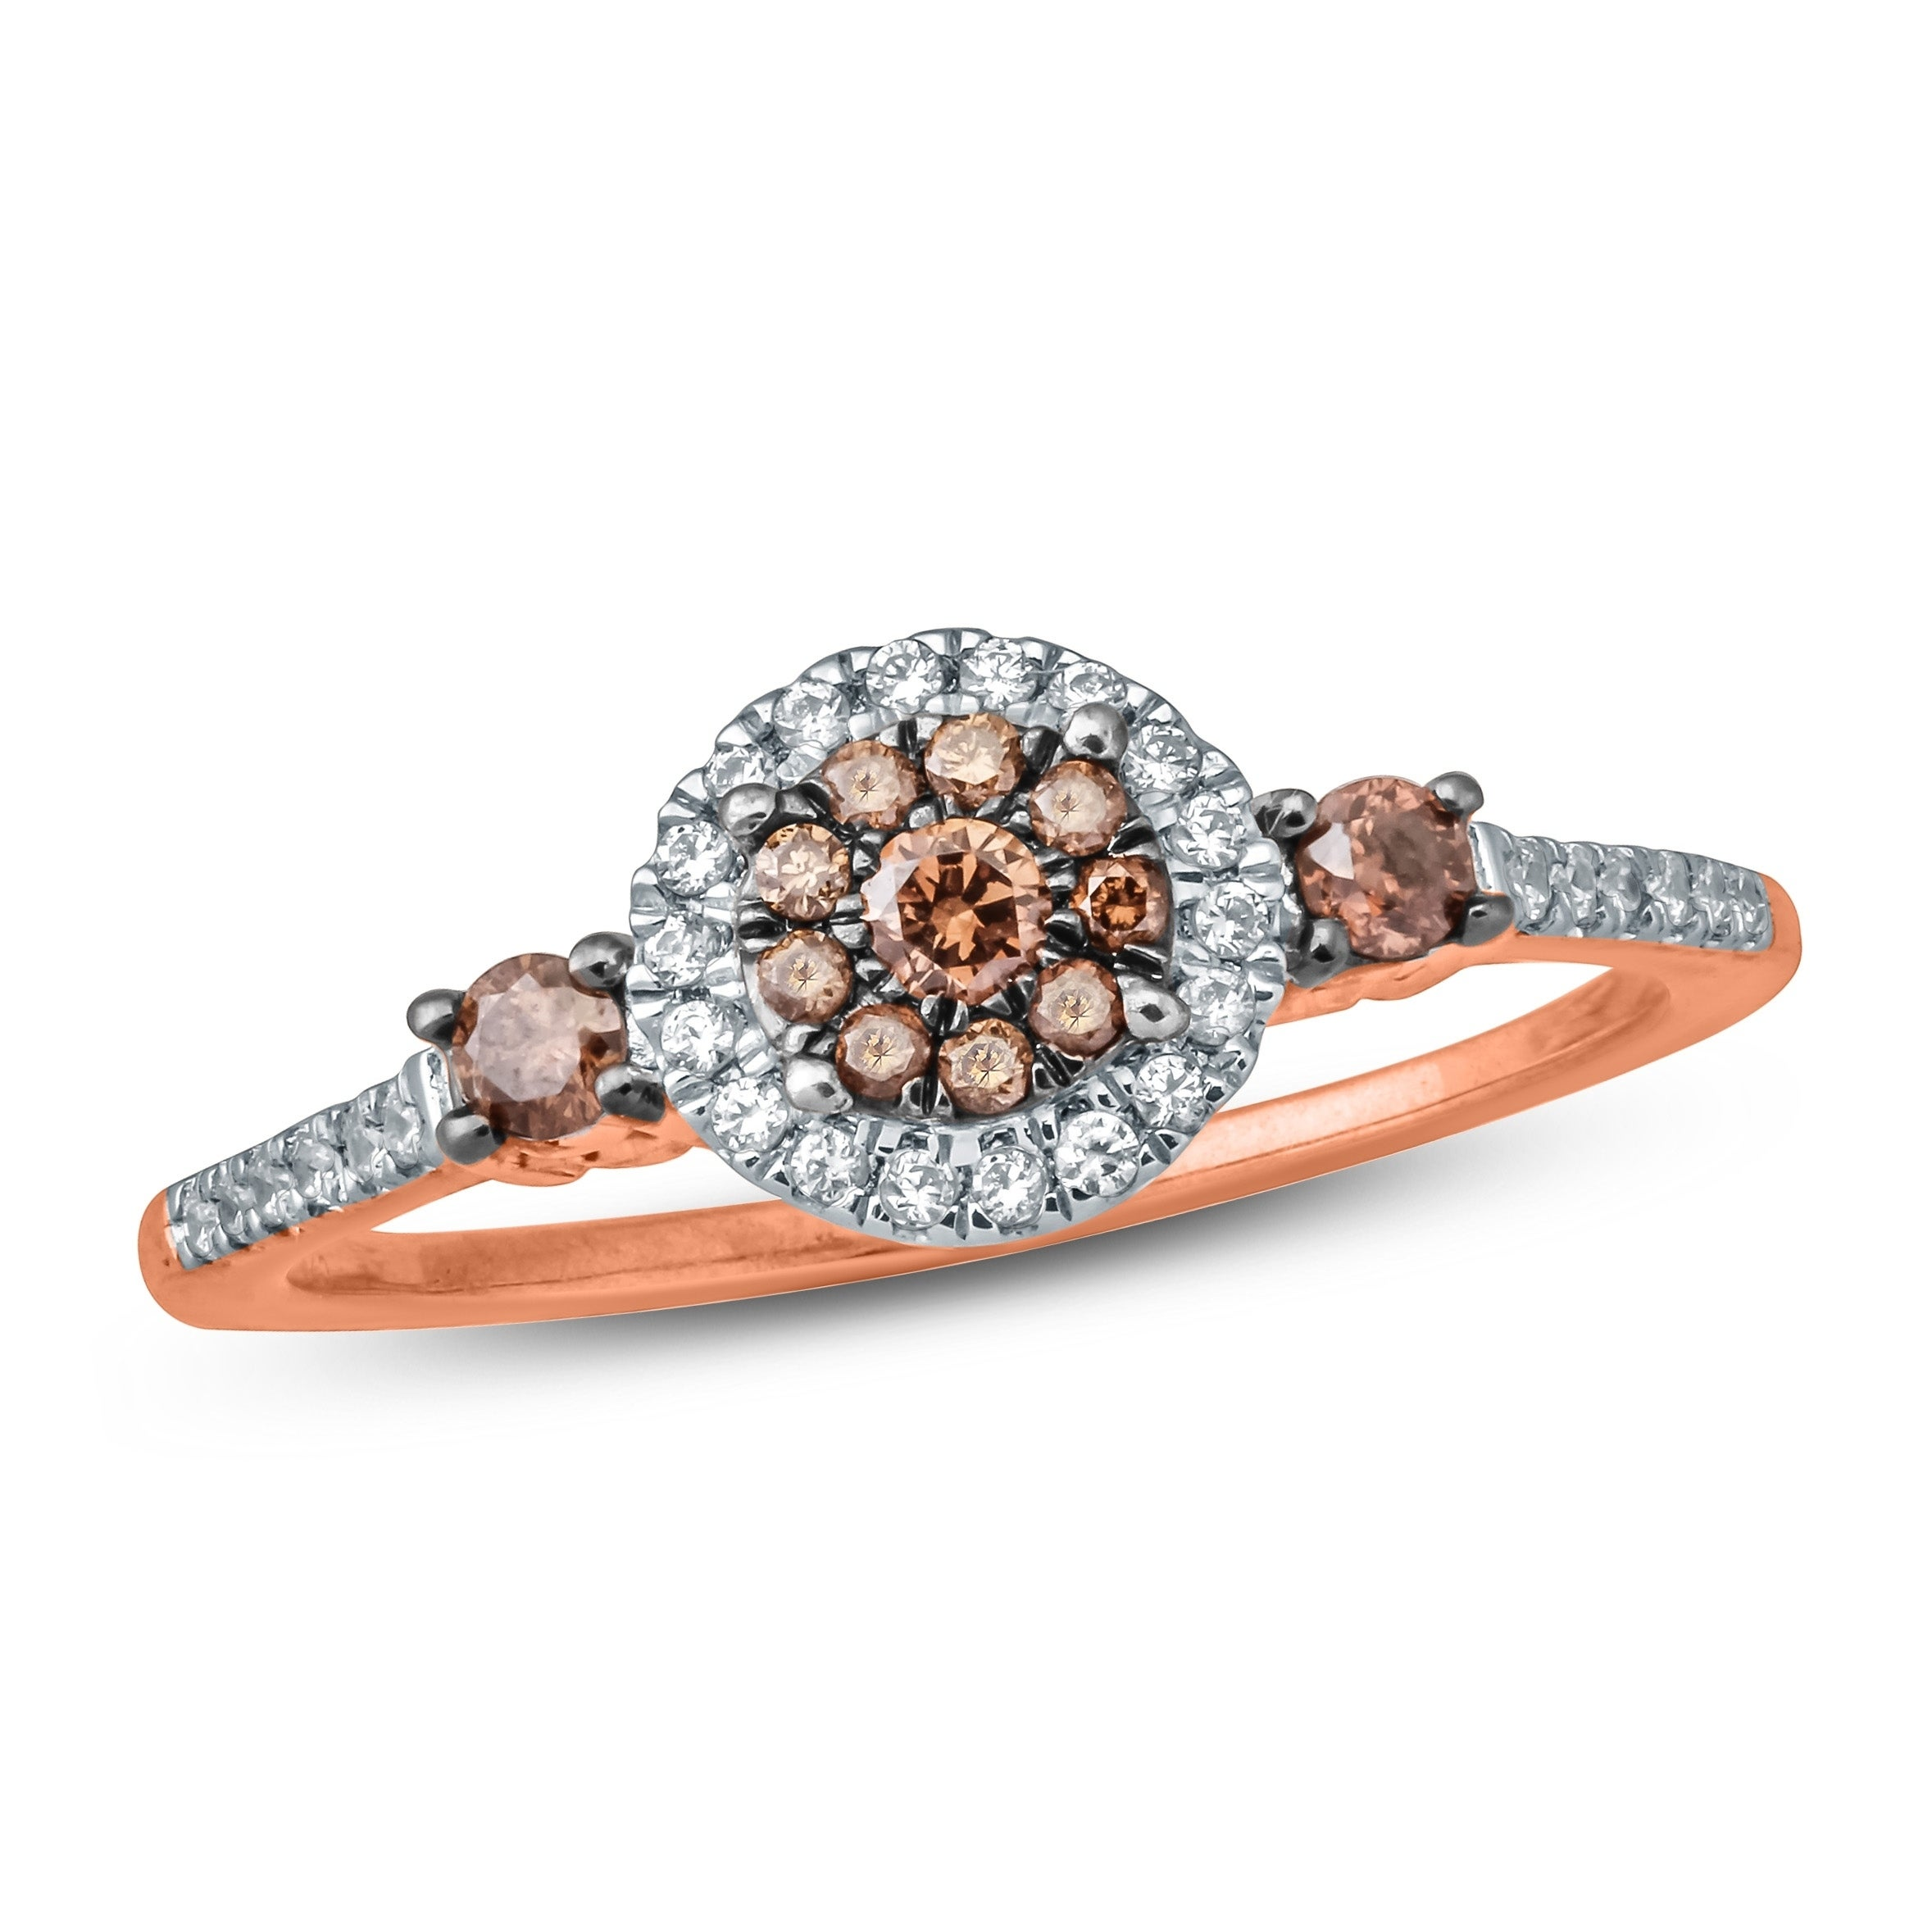 sportun champagne ring diamond products peach anne